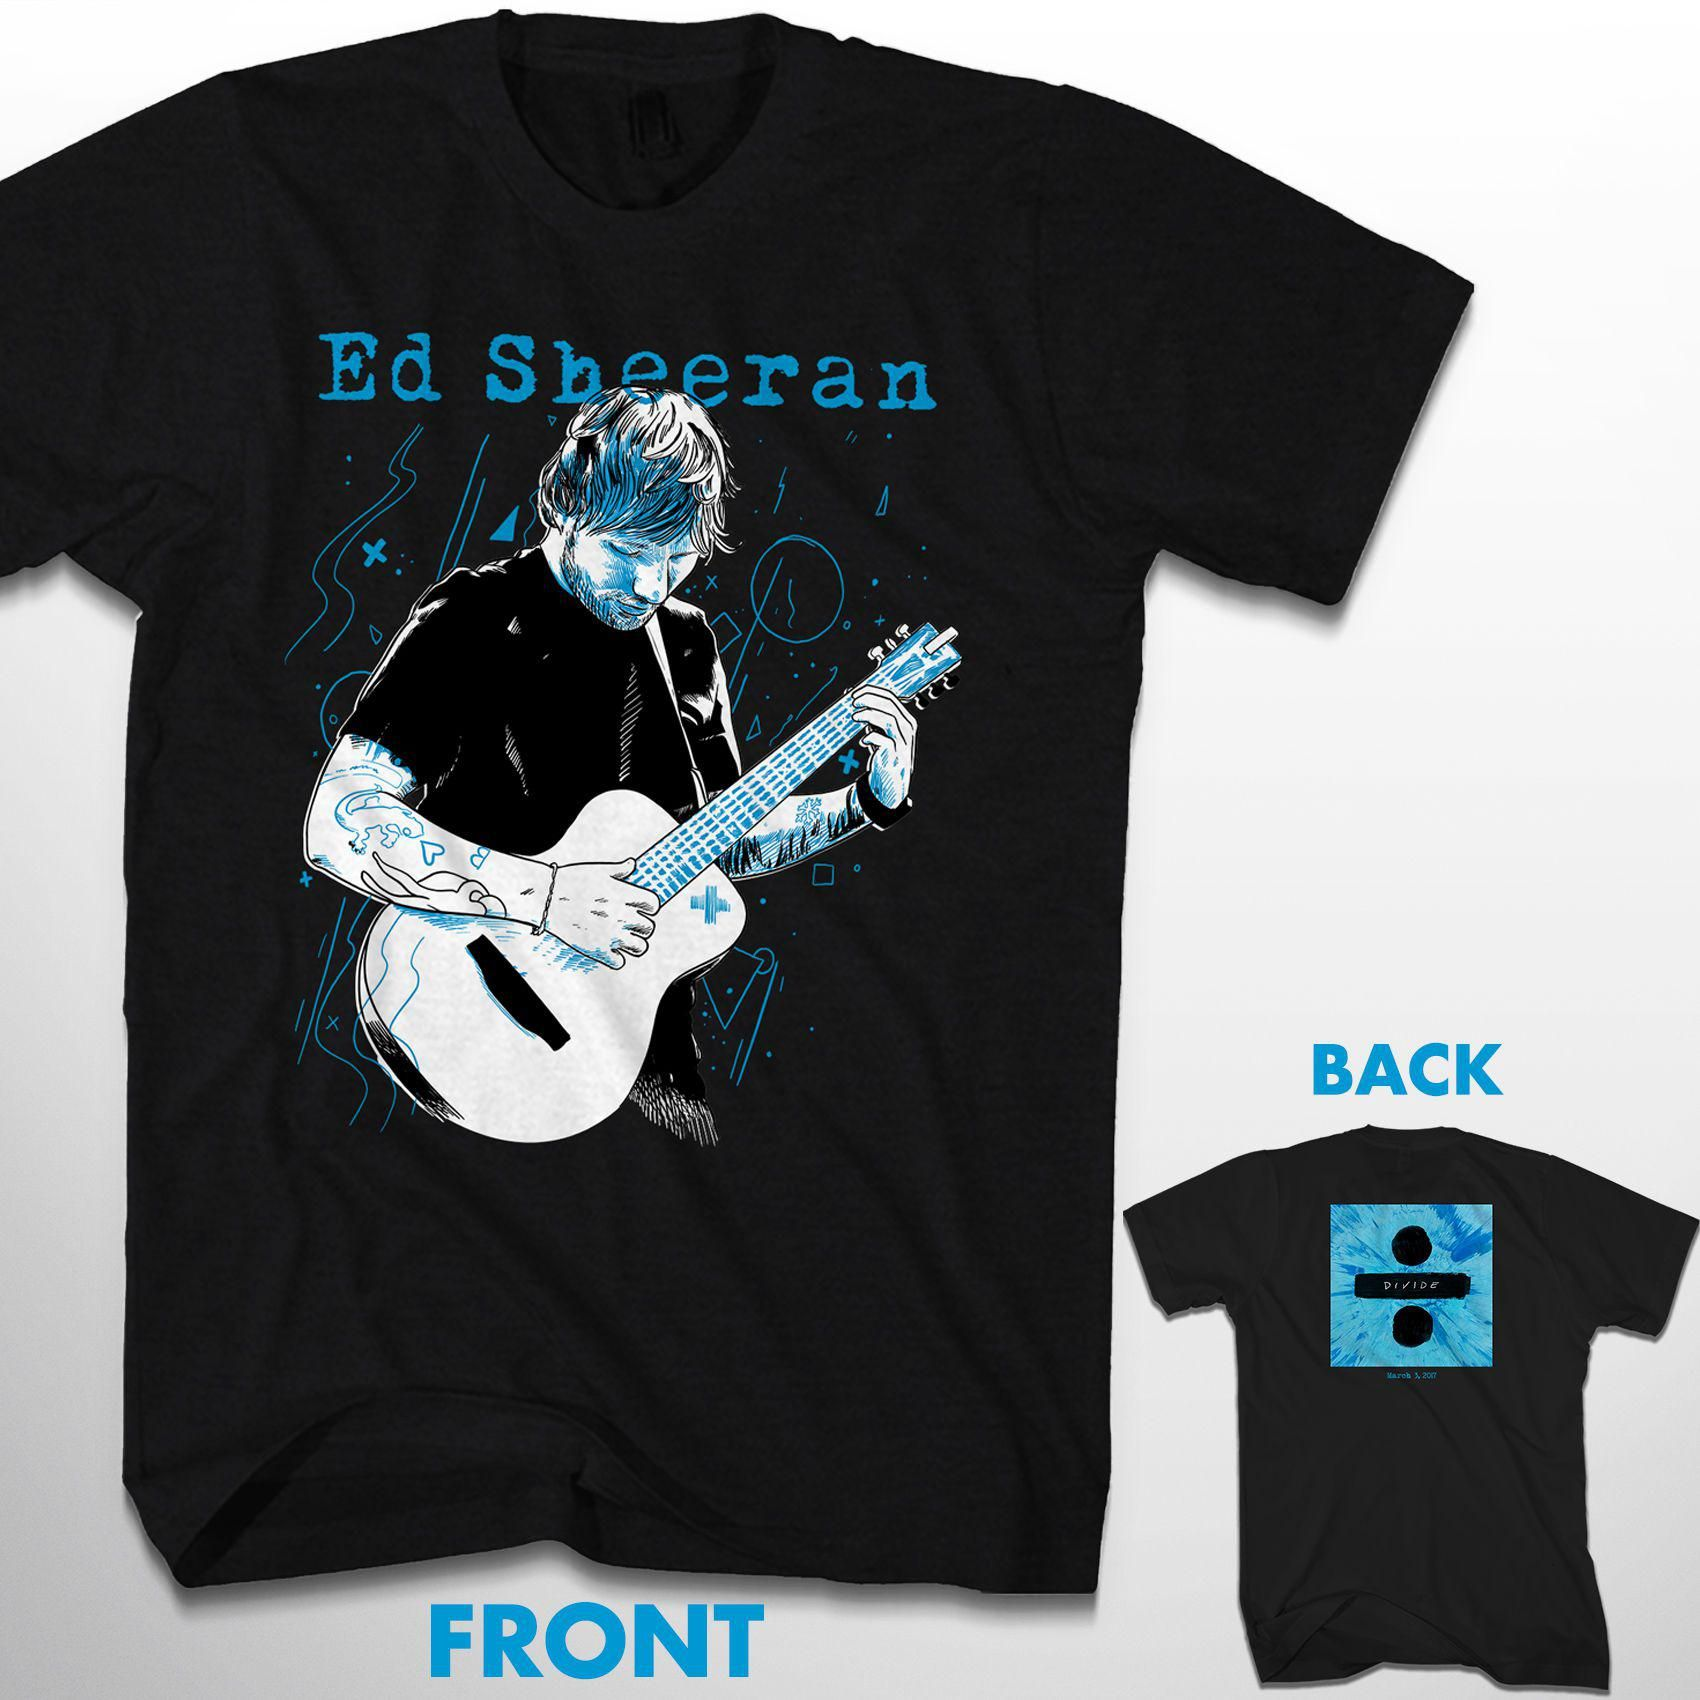 ed sheeran exclusive album t shirt. Black Bedroom Furniture Sets. Home Design Ideas